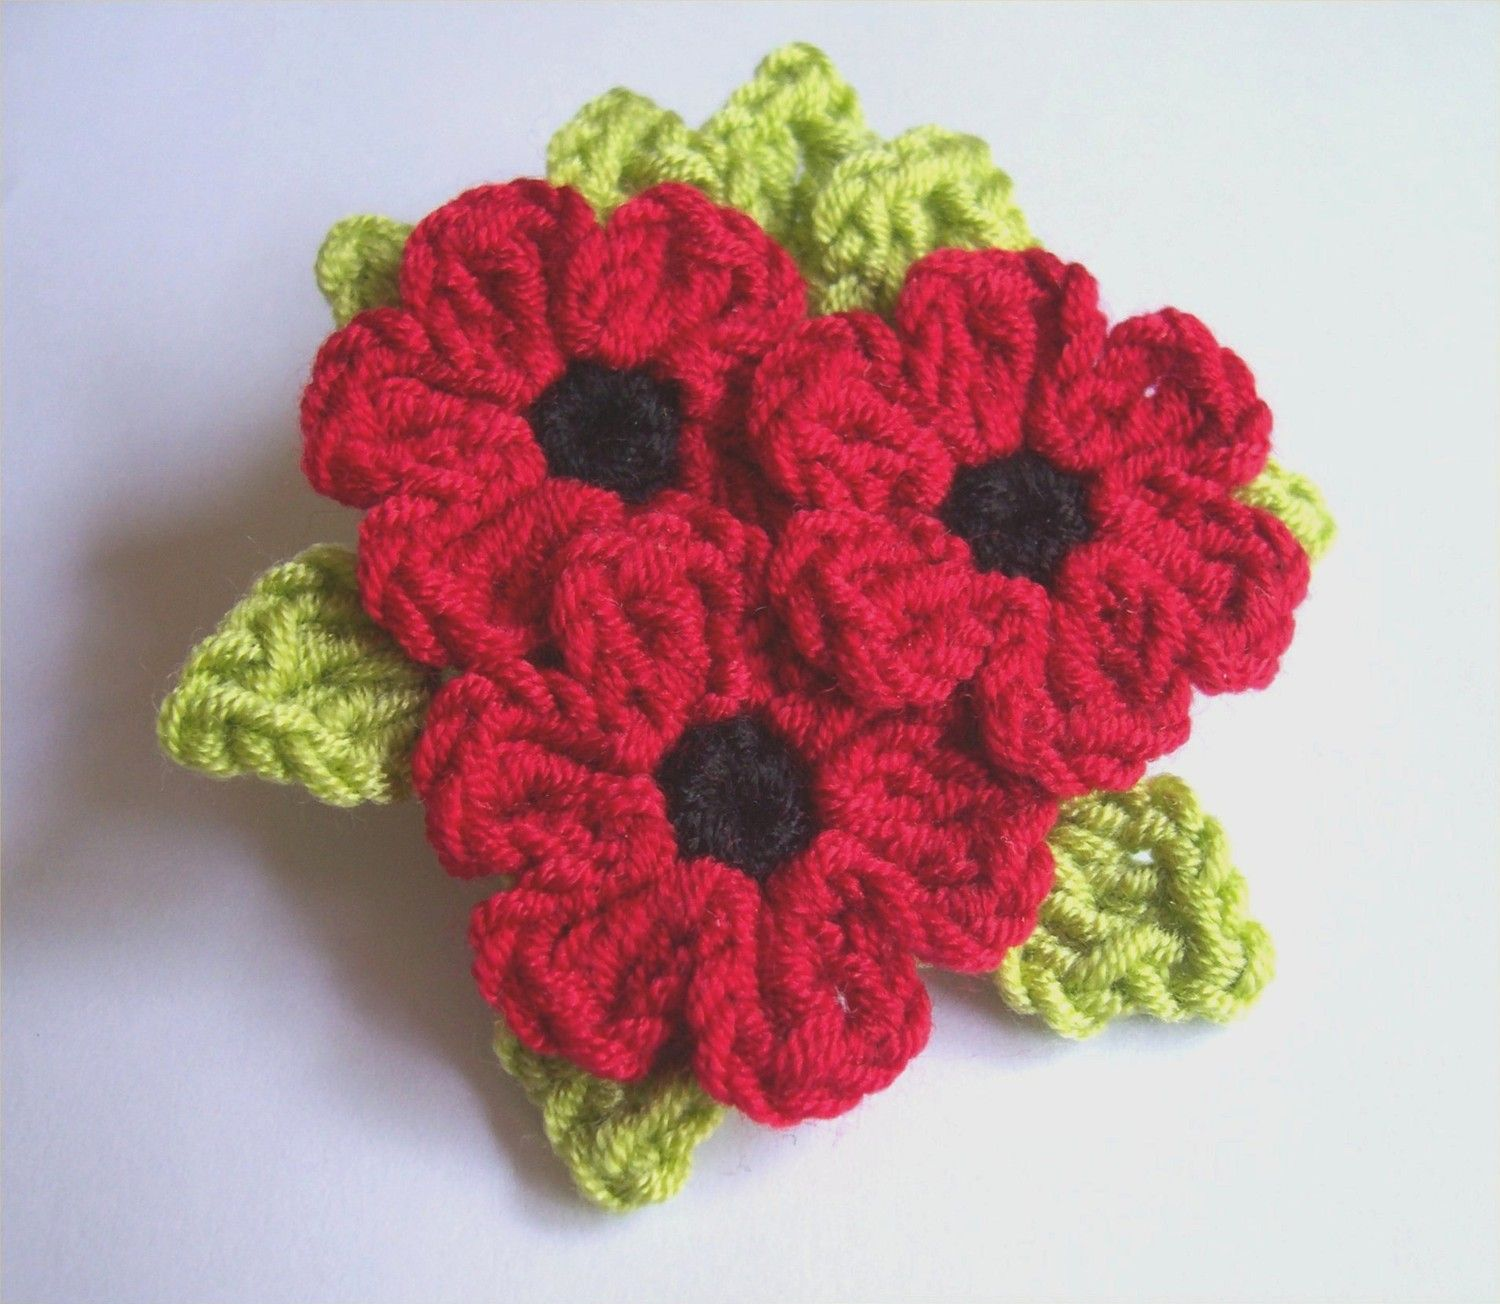 Knitting Pattern For Poppy Brooch : Red Poppy flowers with green leaves bouquet crochet brooch. Crochet pattern...